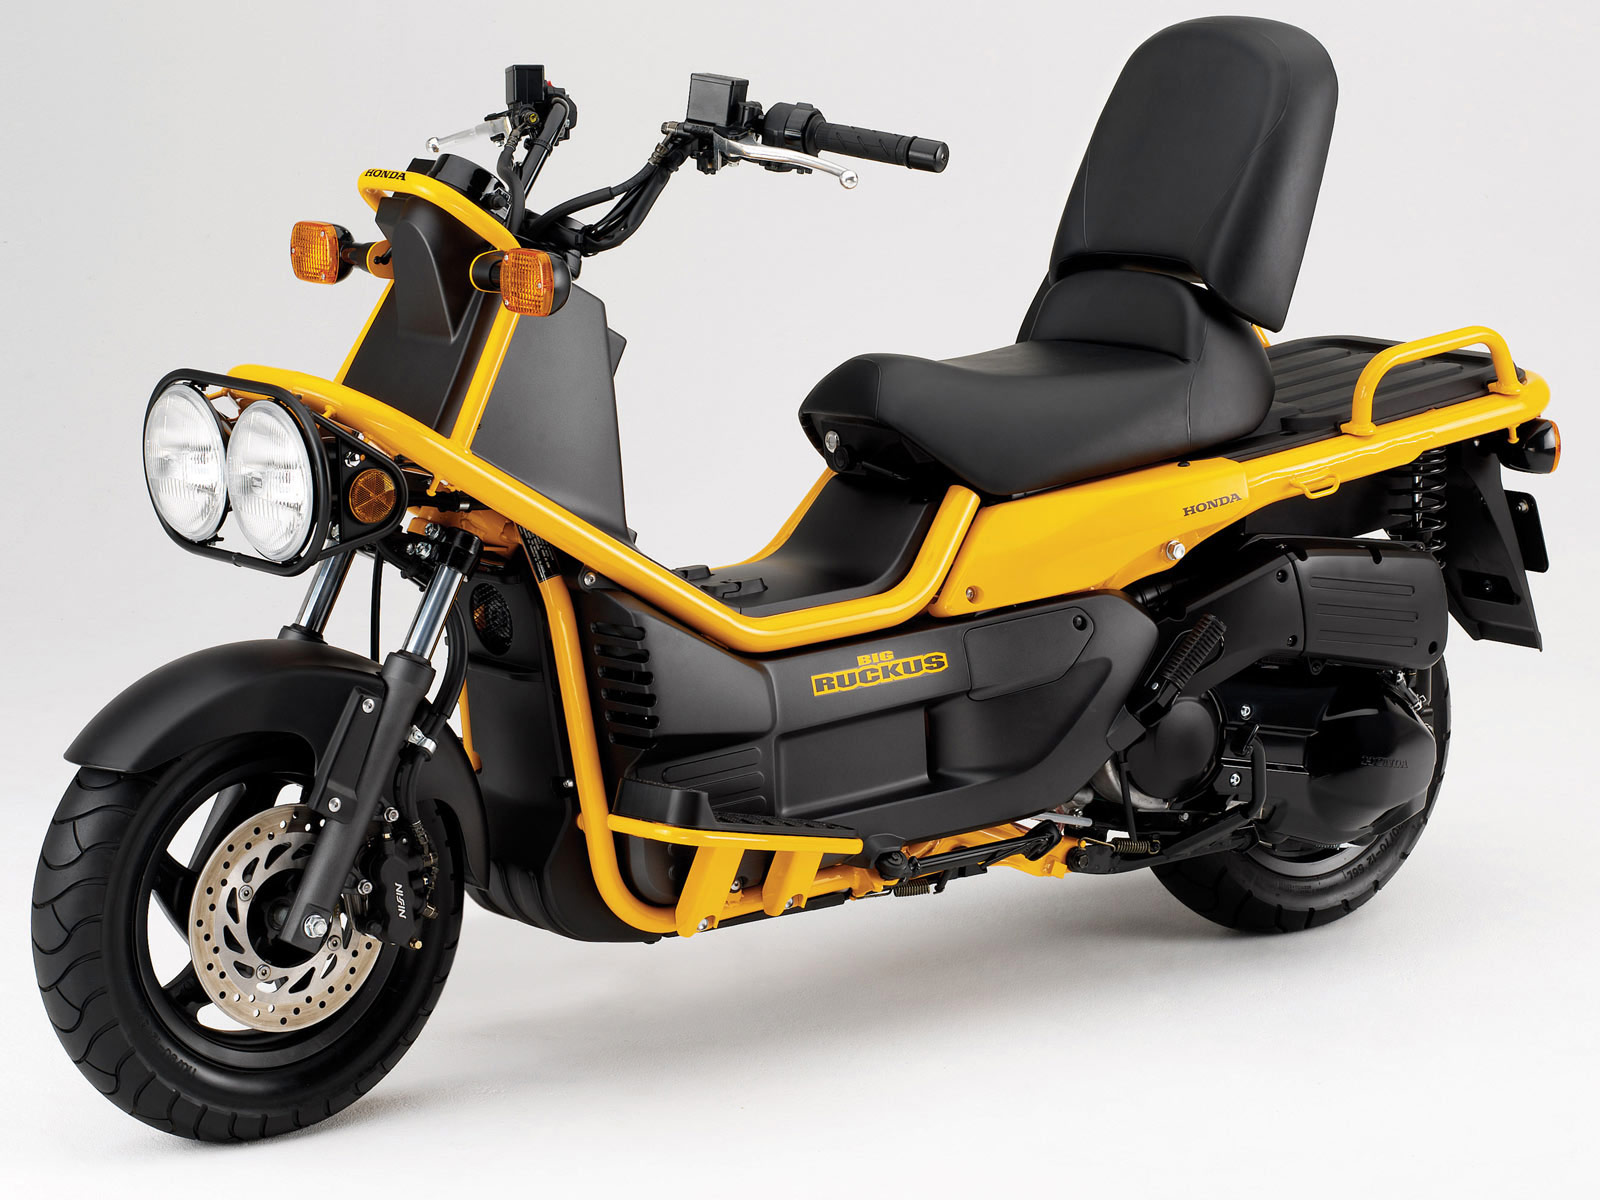 2005 HONDA Big Ruckus accident lawyers info, scooter pictures